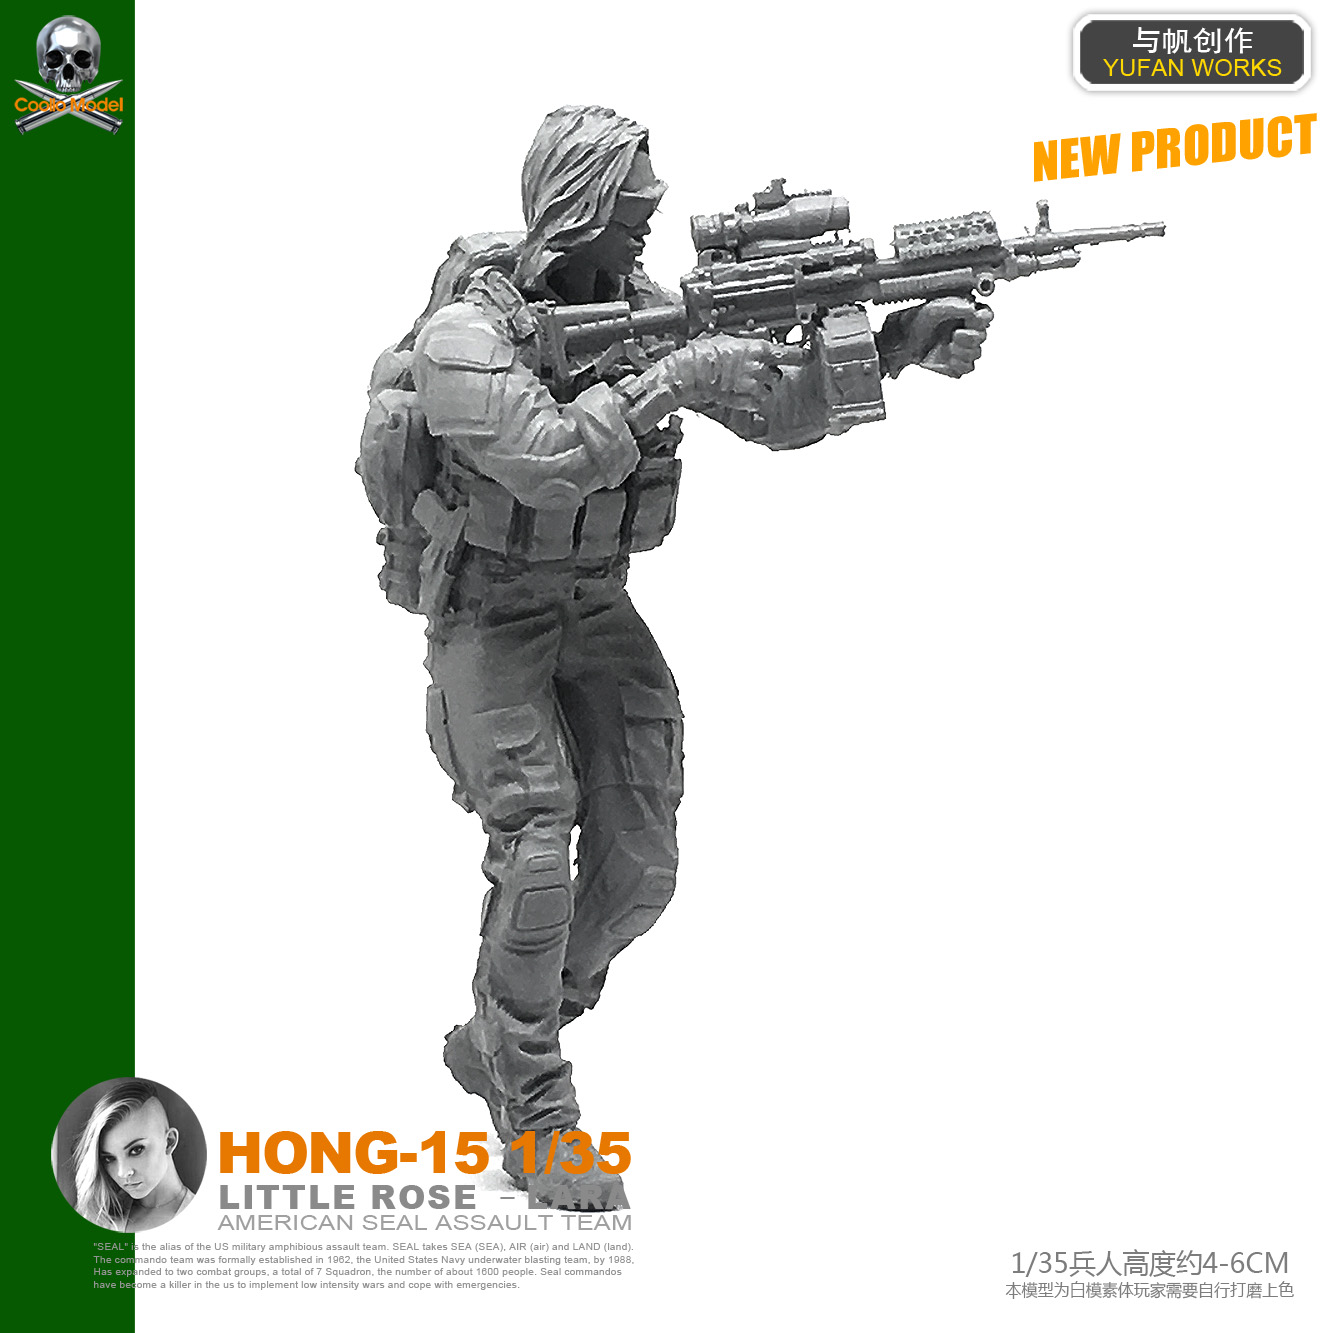 1/35 American Concubine Special Female Resin Soldier HONG-15